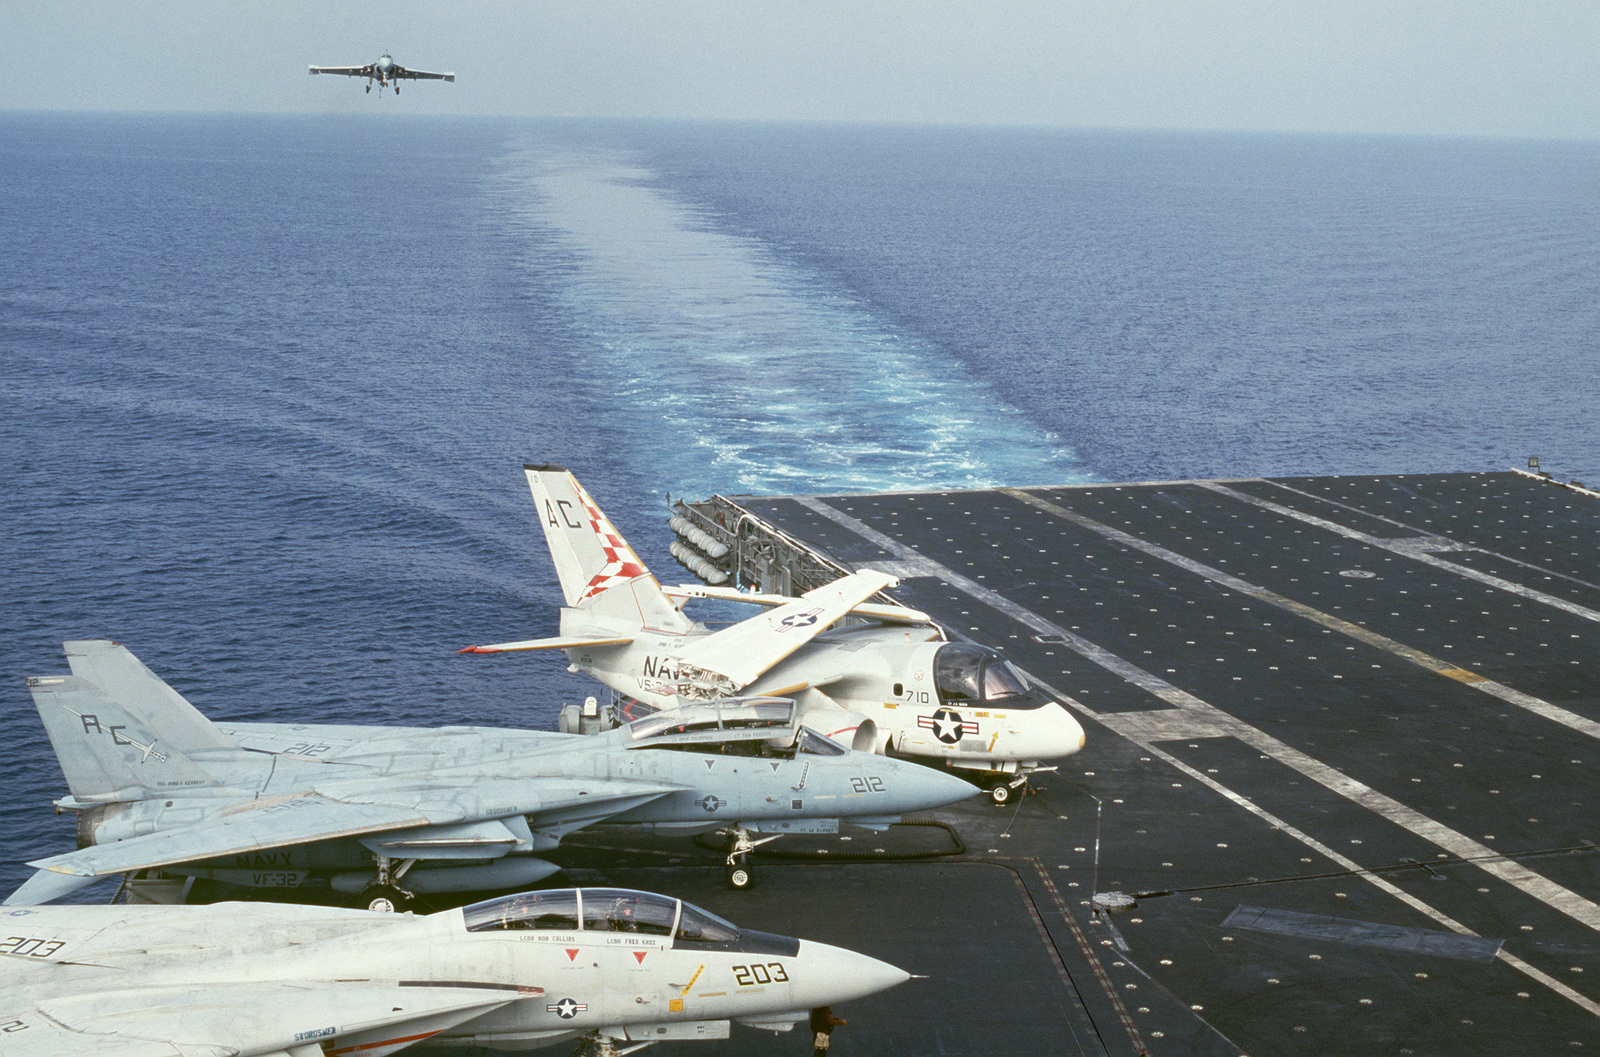 An A-6E Intruder aircraft comes in for a landing on the flight deck of the Aircraft Carrier USS JOHN F. KENNEDY (CV 67).  An S-3A Viking aircraft and two Fighter Squadron 32 (VF-32) F-14A Tomcat aircraft are parked on deck